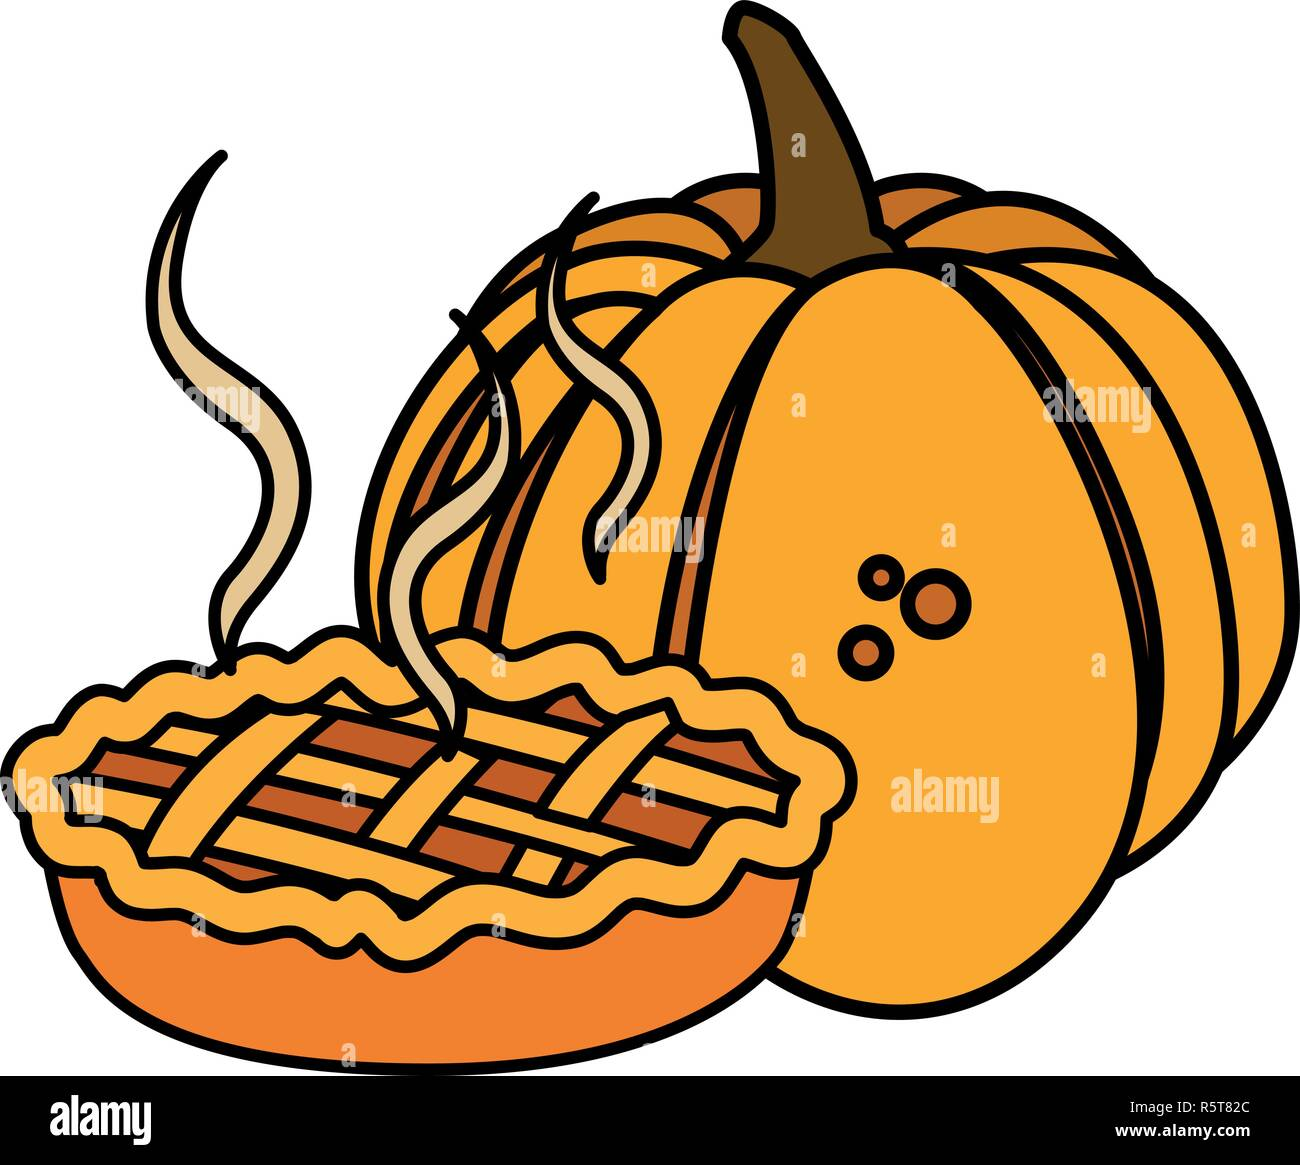 Cartoon Pie Face Immagini   Cartoon Pie Face Fotos Stock - Alamy bf4e946d534d